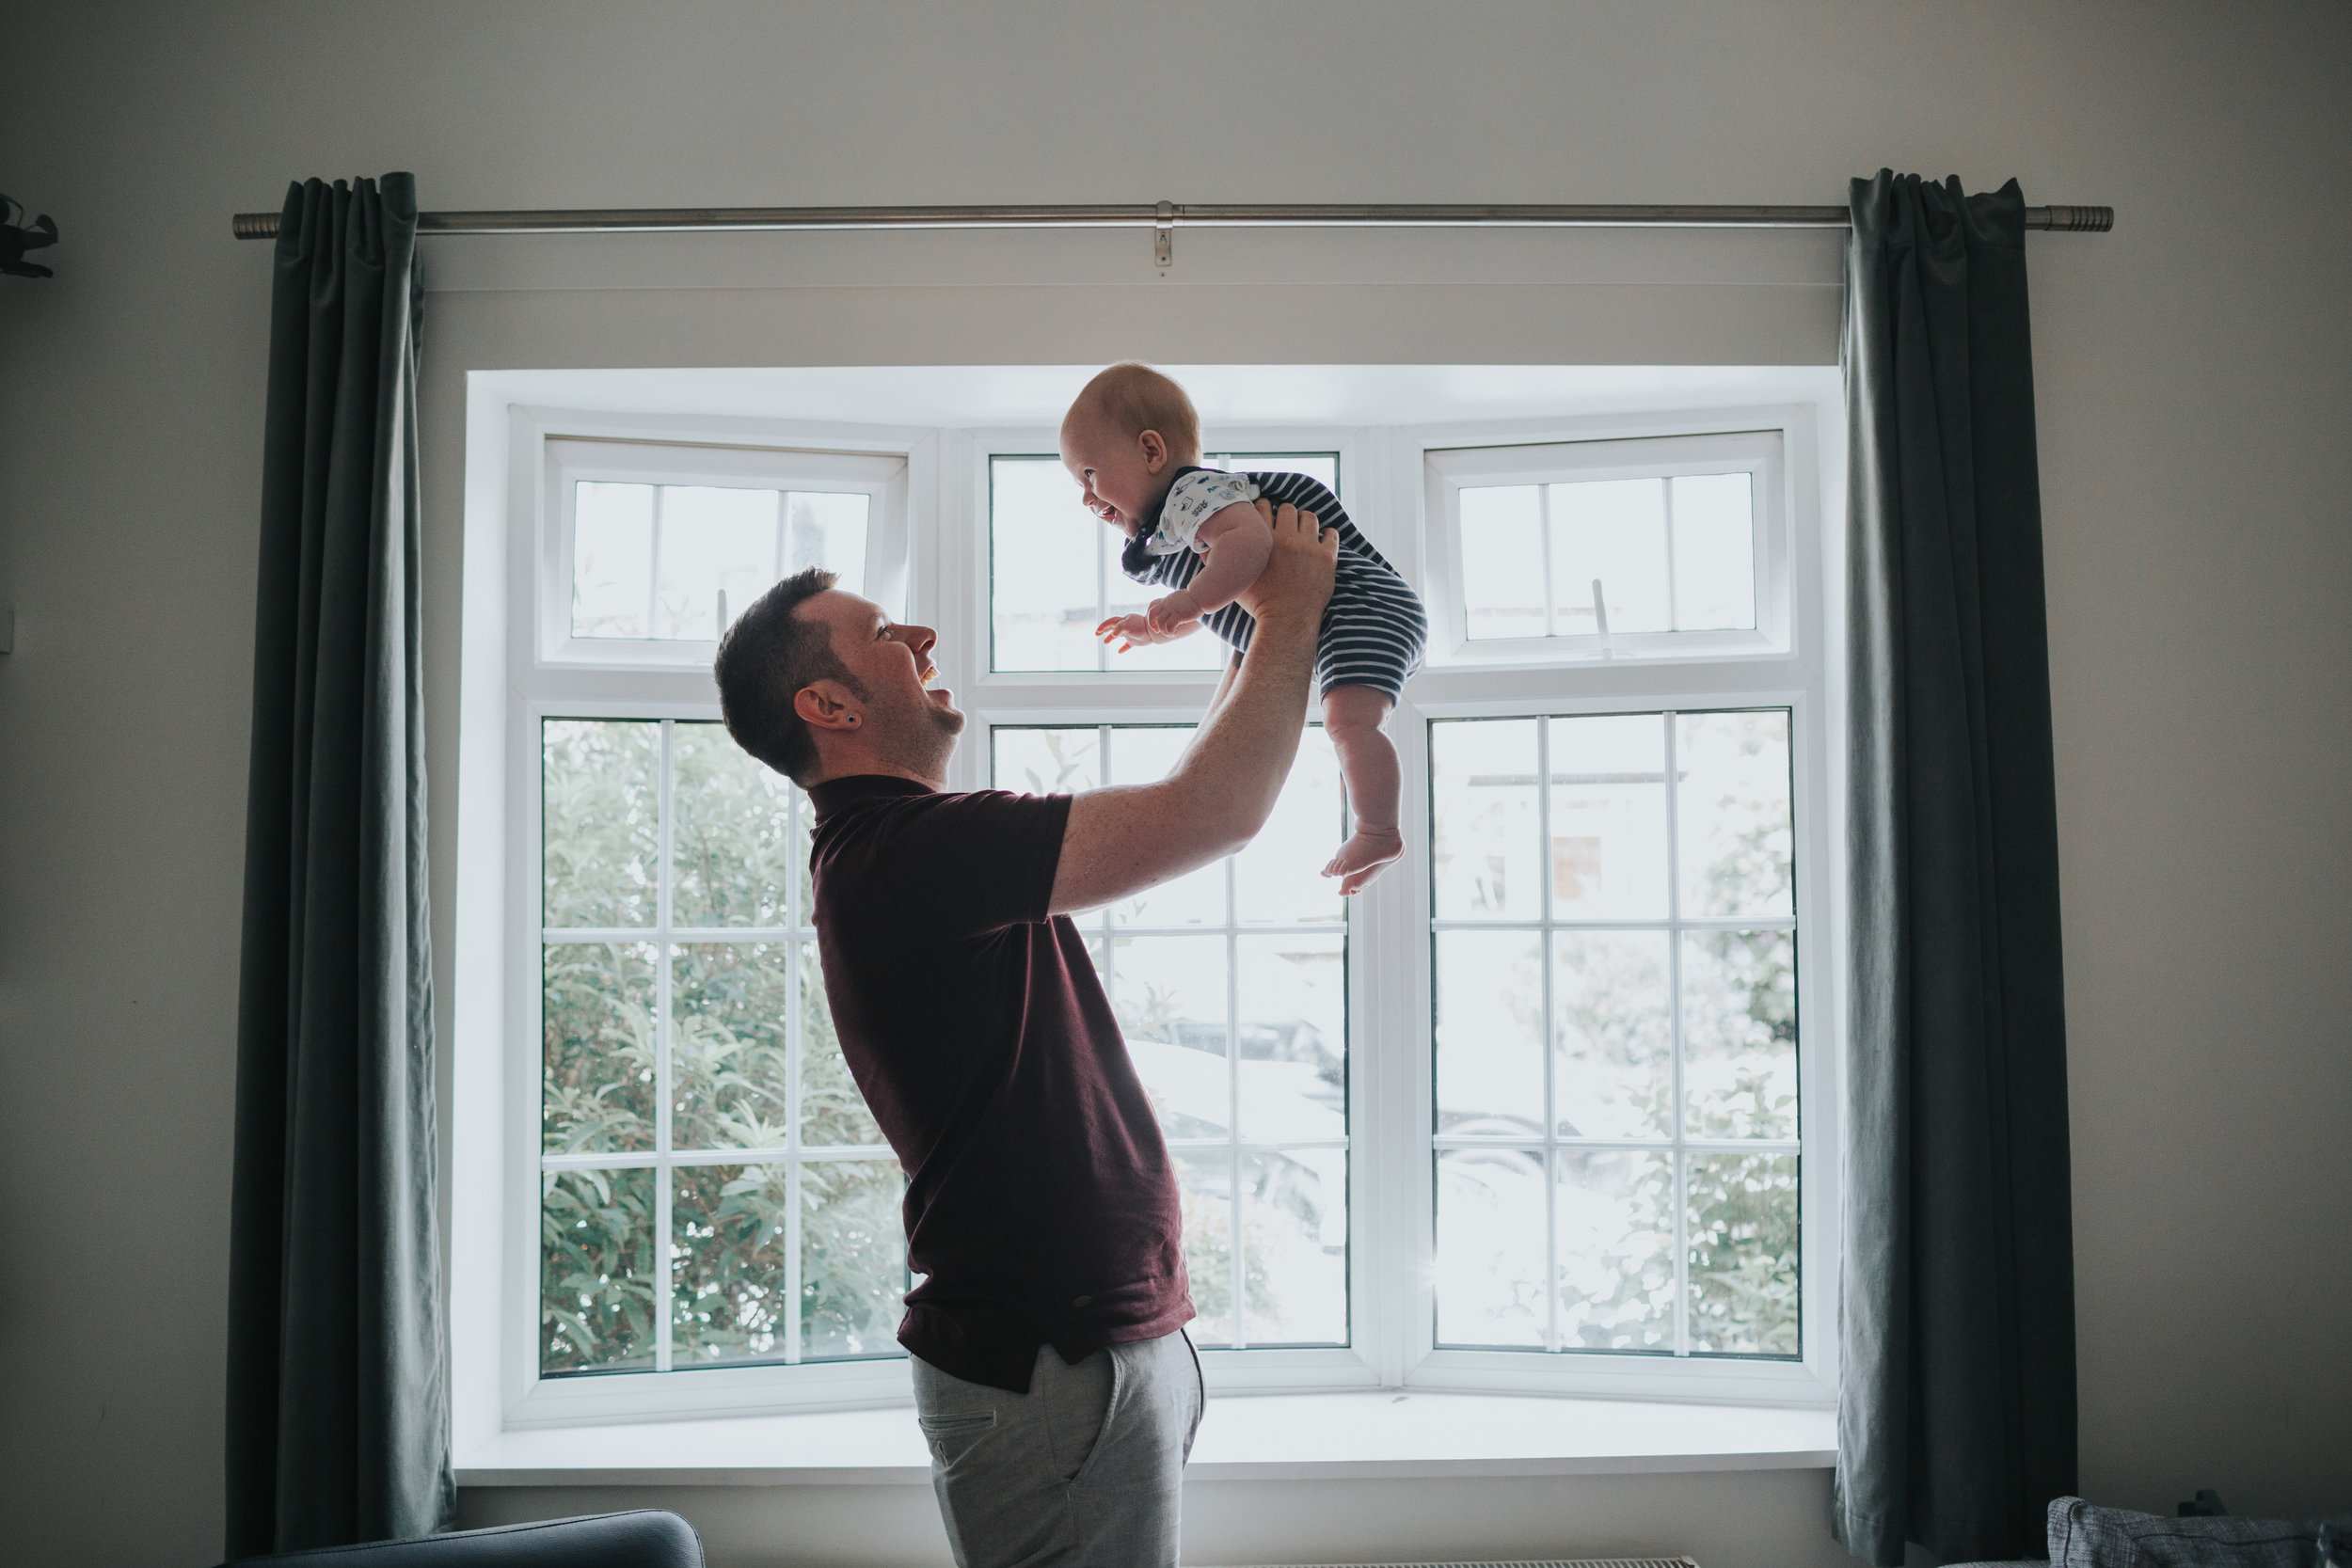 Dad chucks baby up and down in font of window to celebrate.